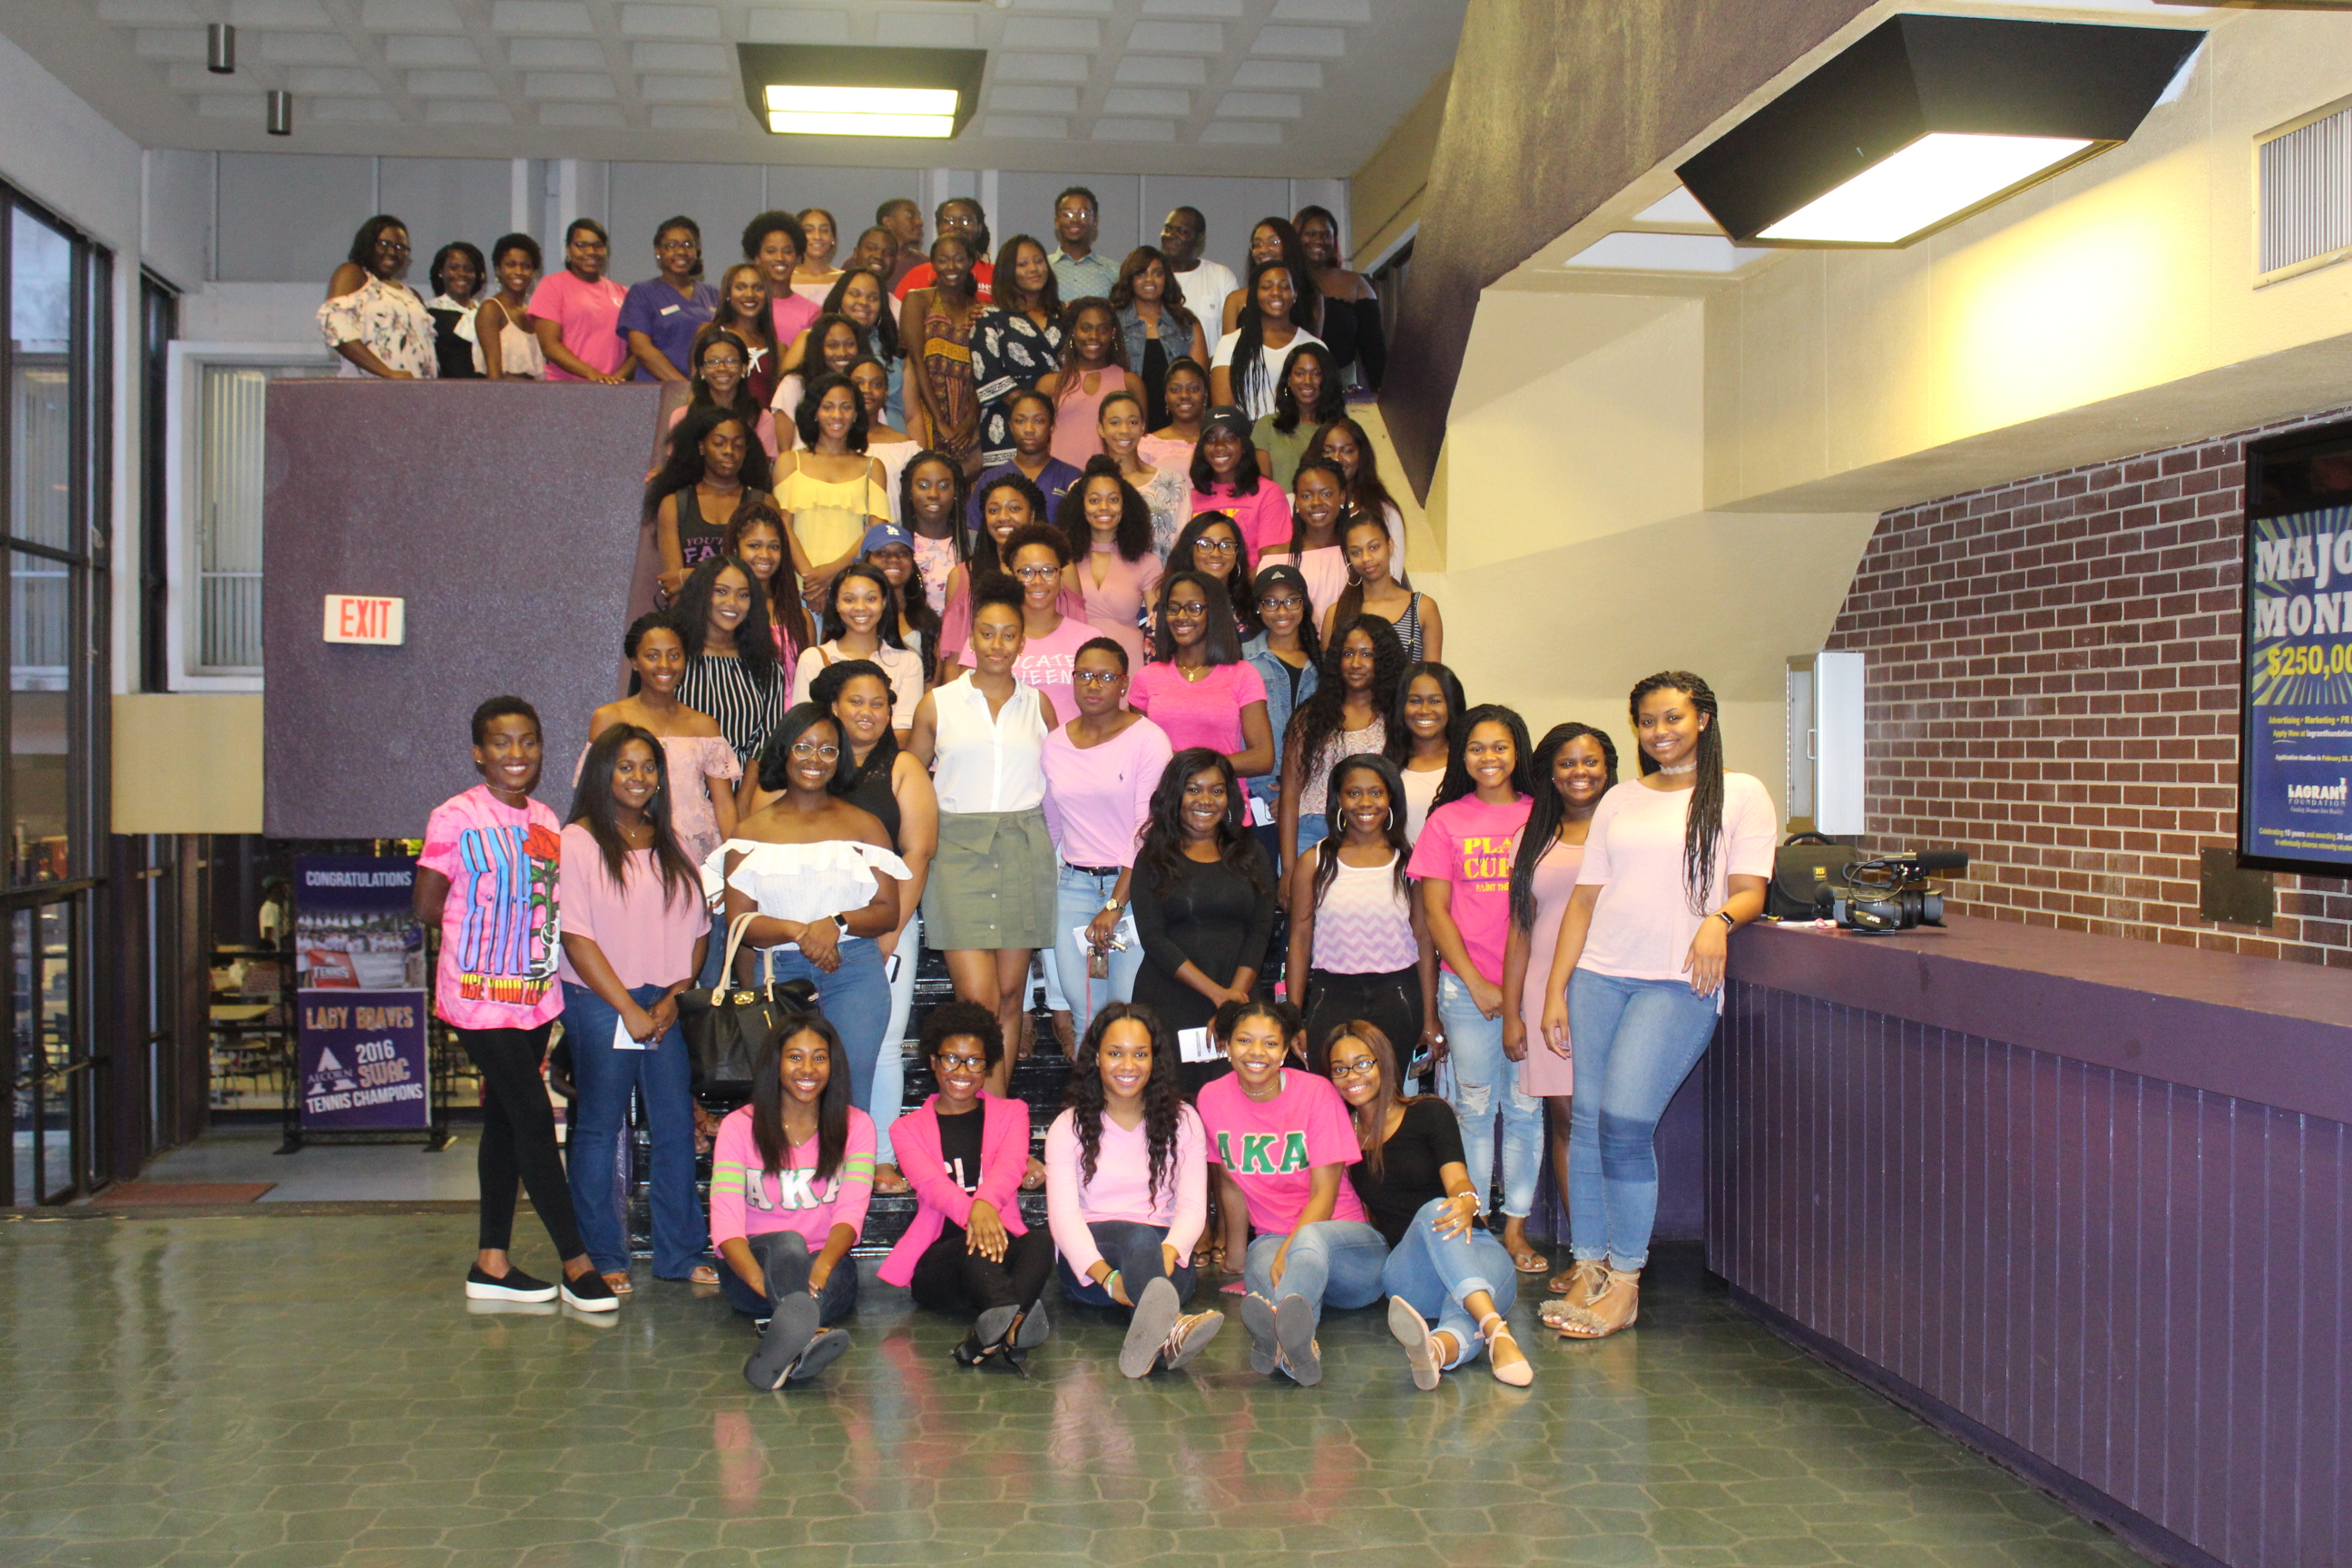 AKA's Host Breast Cancer Event